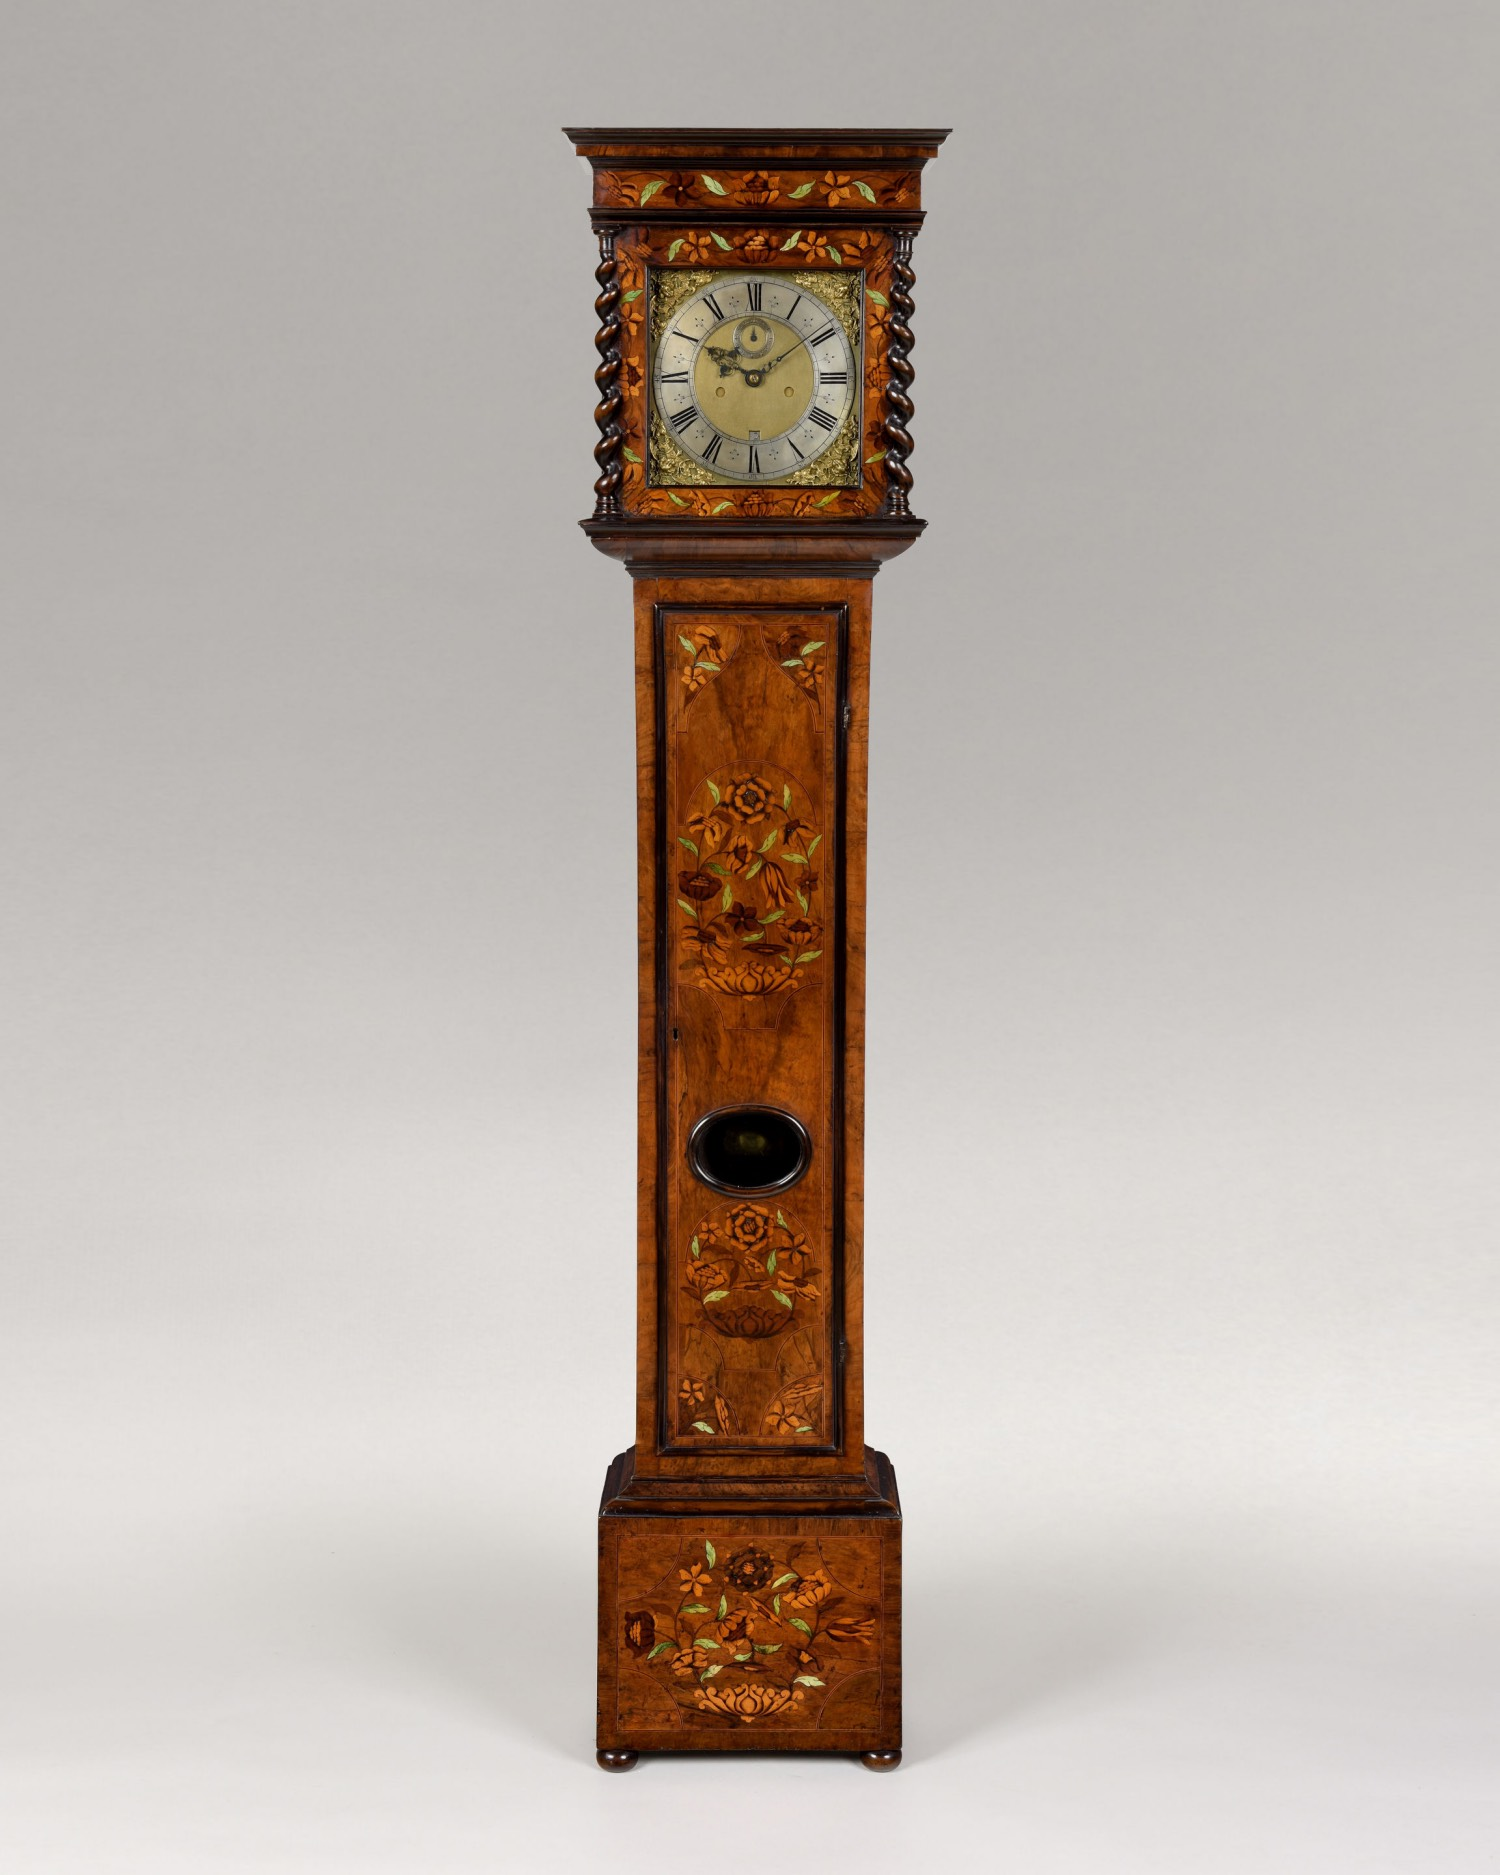 robert-seignior-a-very-rare-charles-ii-period-floral-marquetry-walnut-and-green-bone-inlaid-8-day-longcase-clock-of-beautiful-